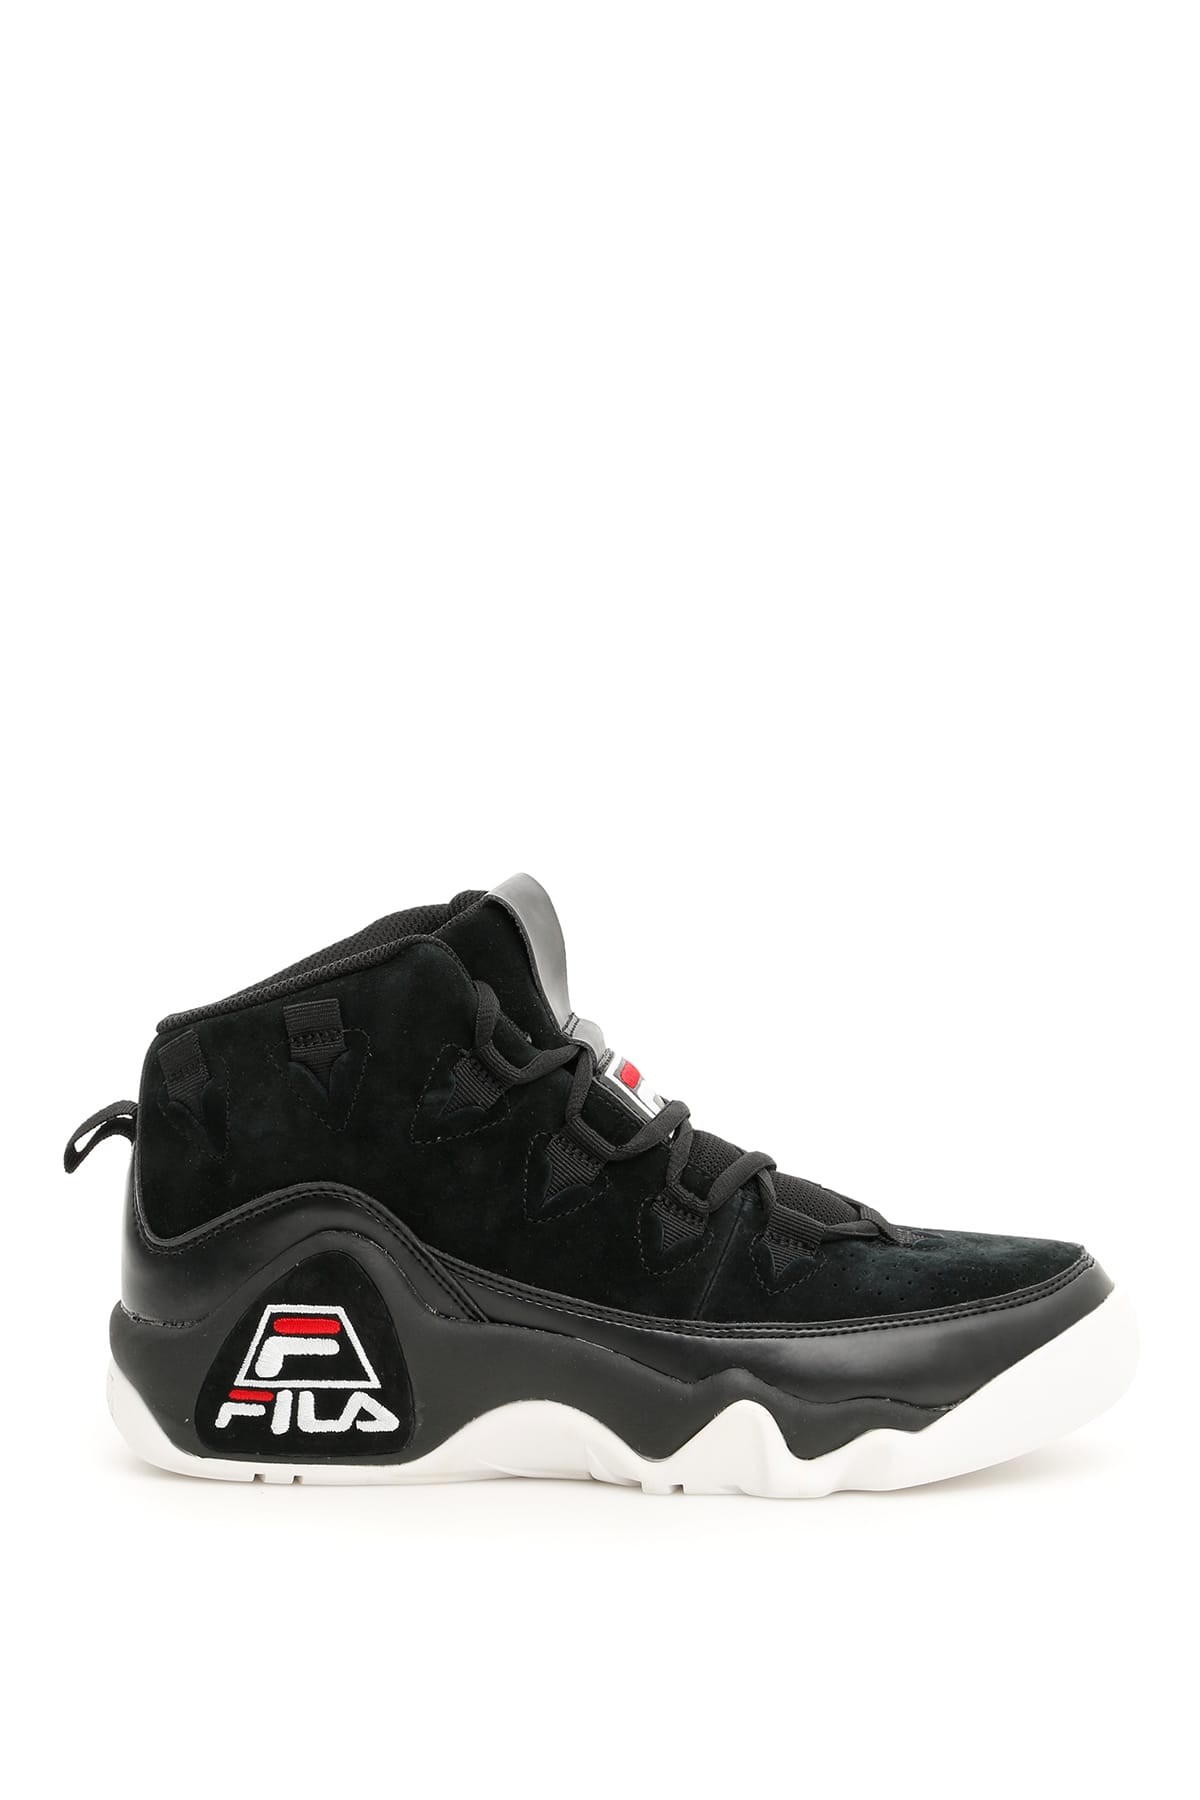 Fila Grant Hill Sneakers